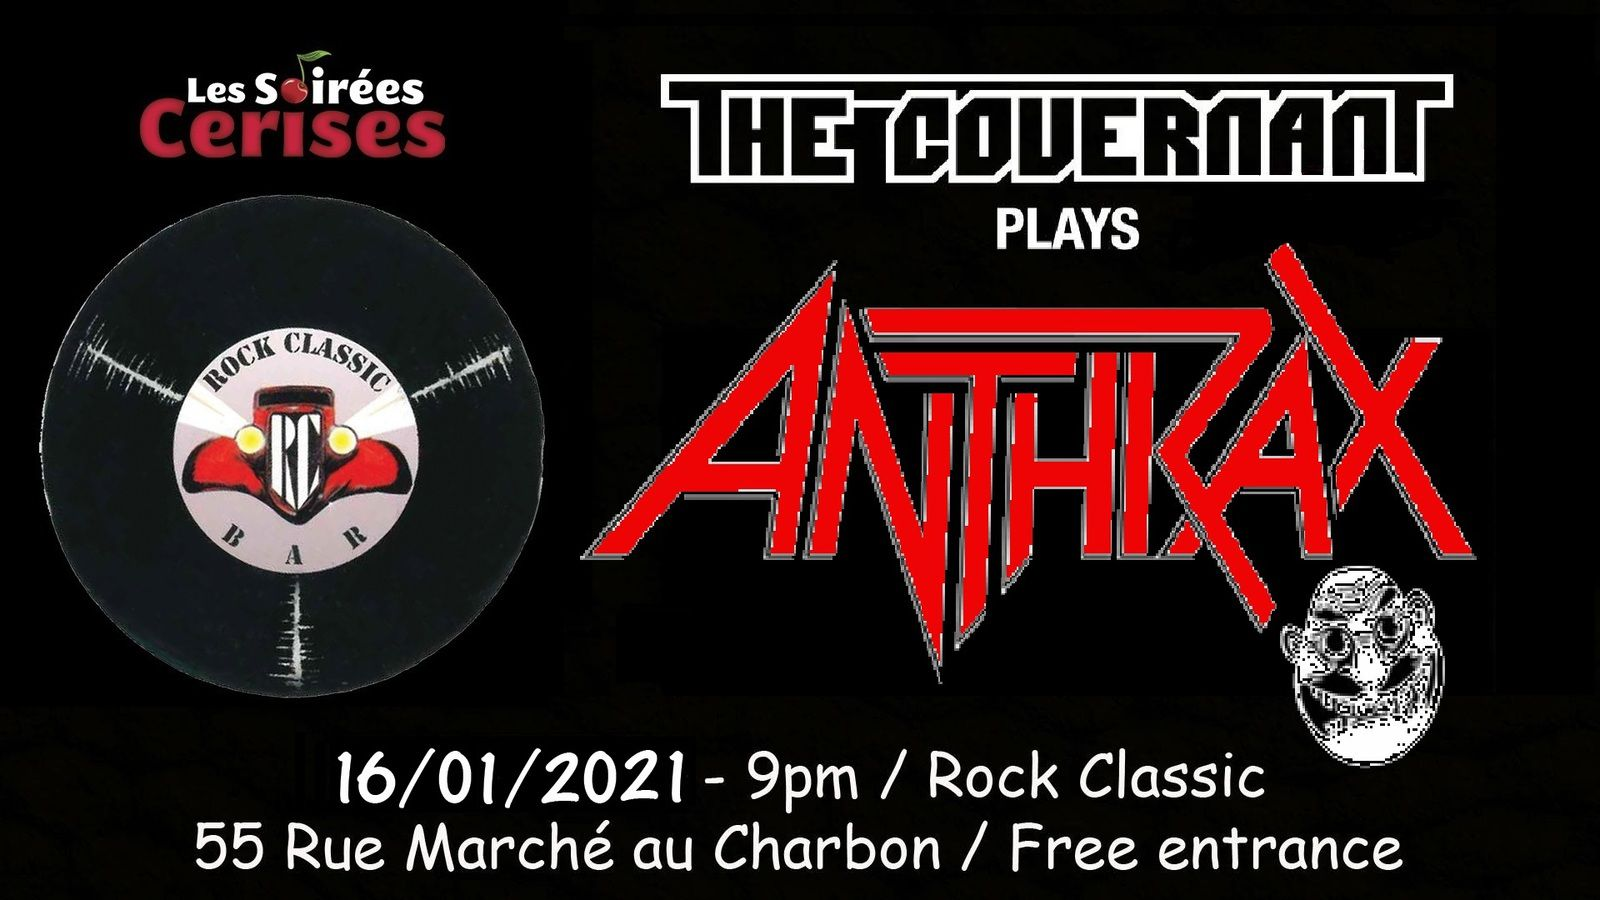 🎵 The Covernant plays ANTHRAX @ Rock Classic - 16/01/2021 - 21h00 - Entrée gratuite / Free entrance